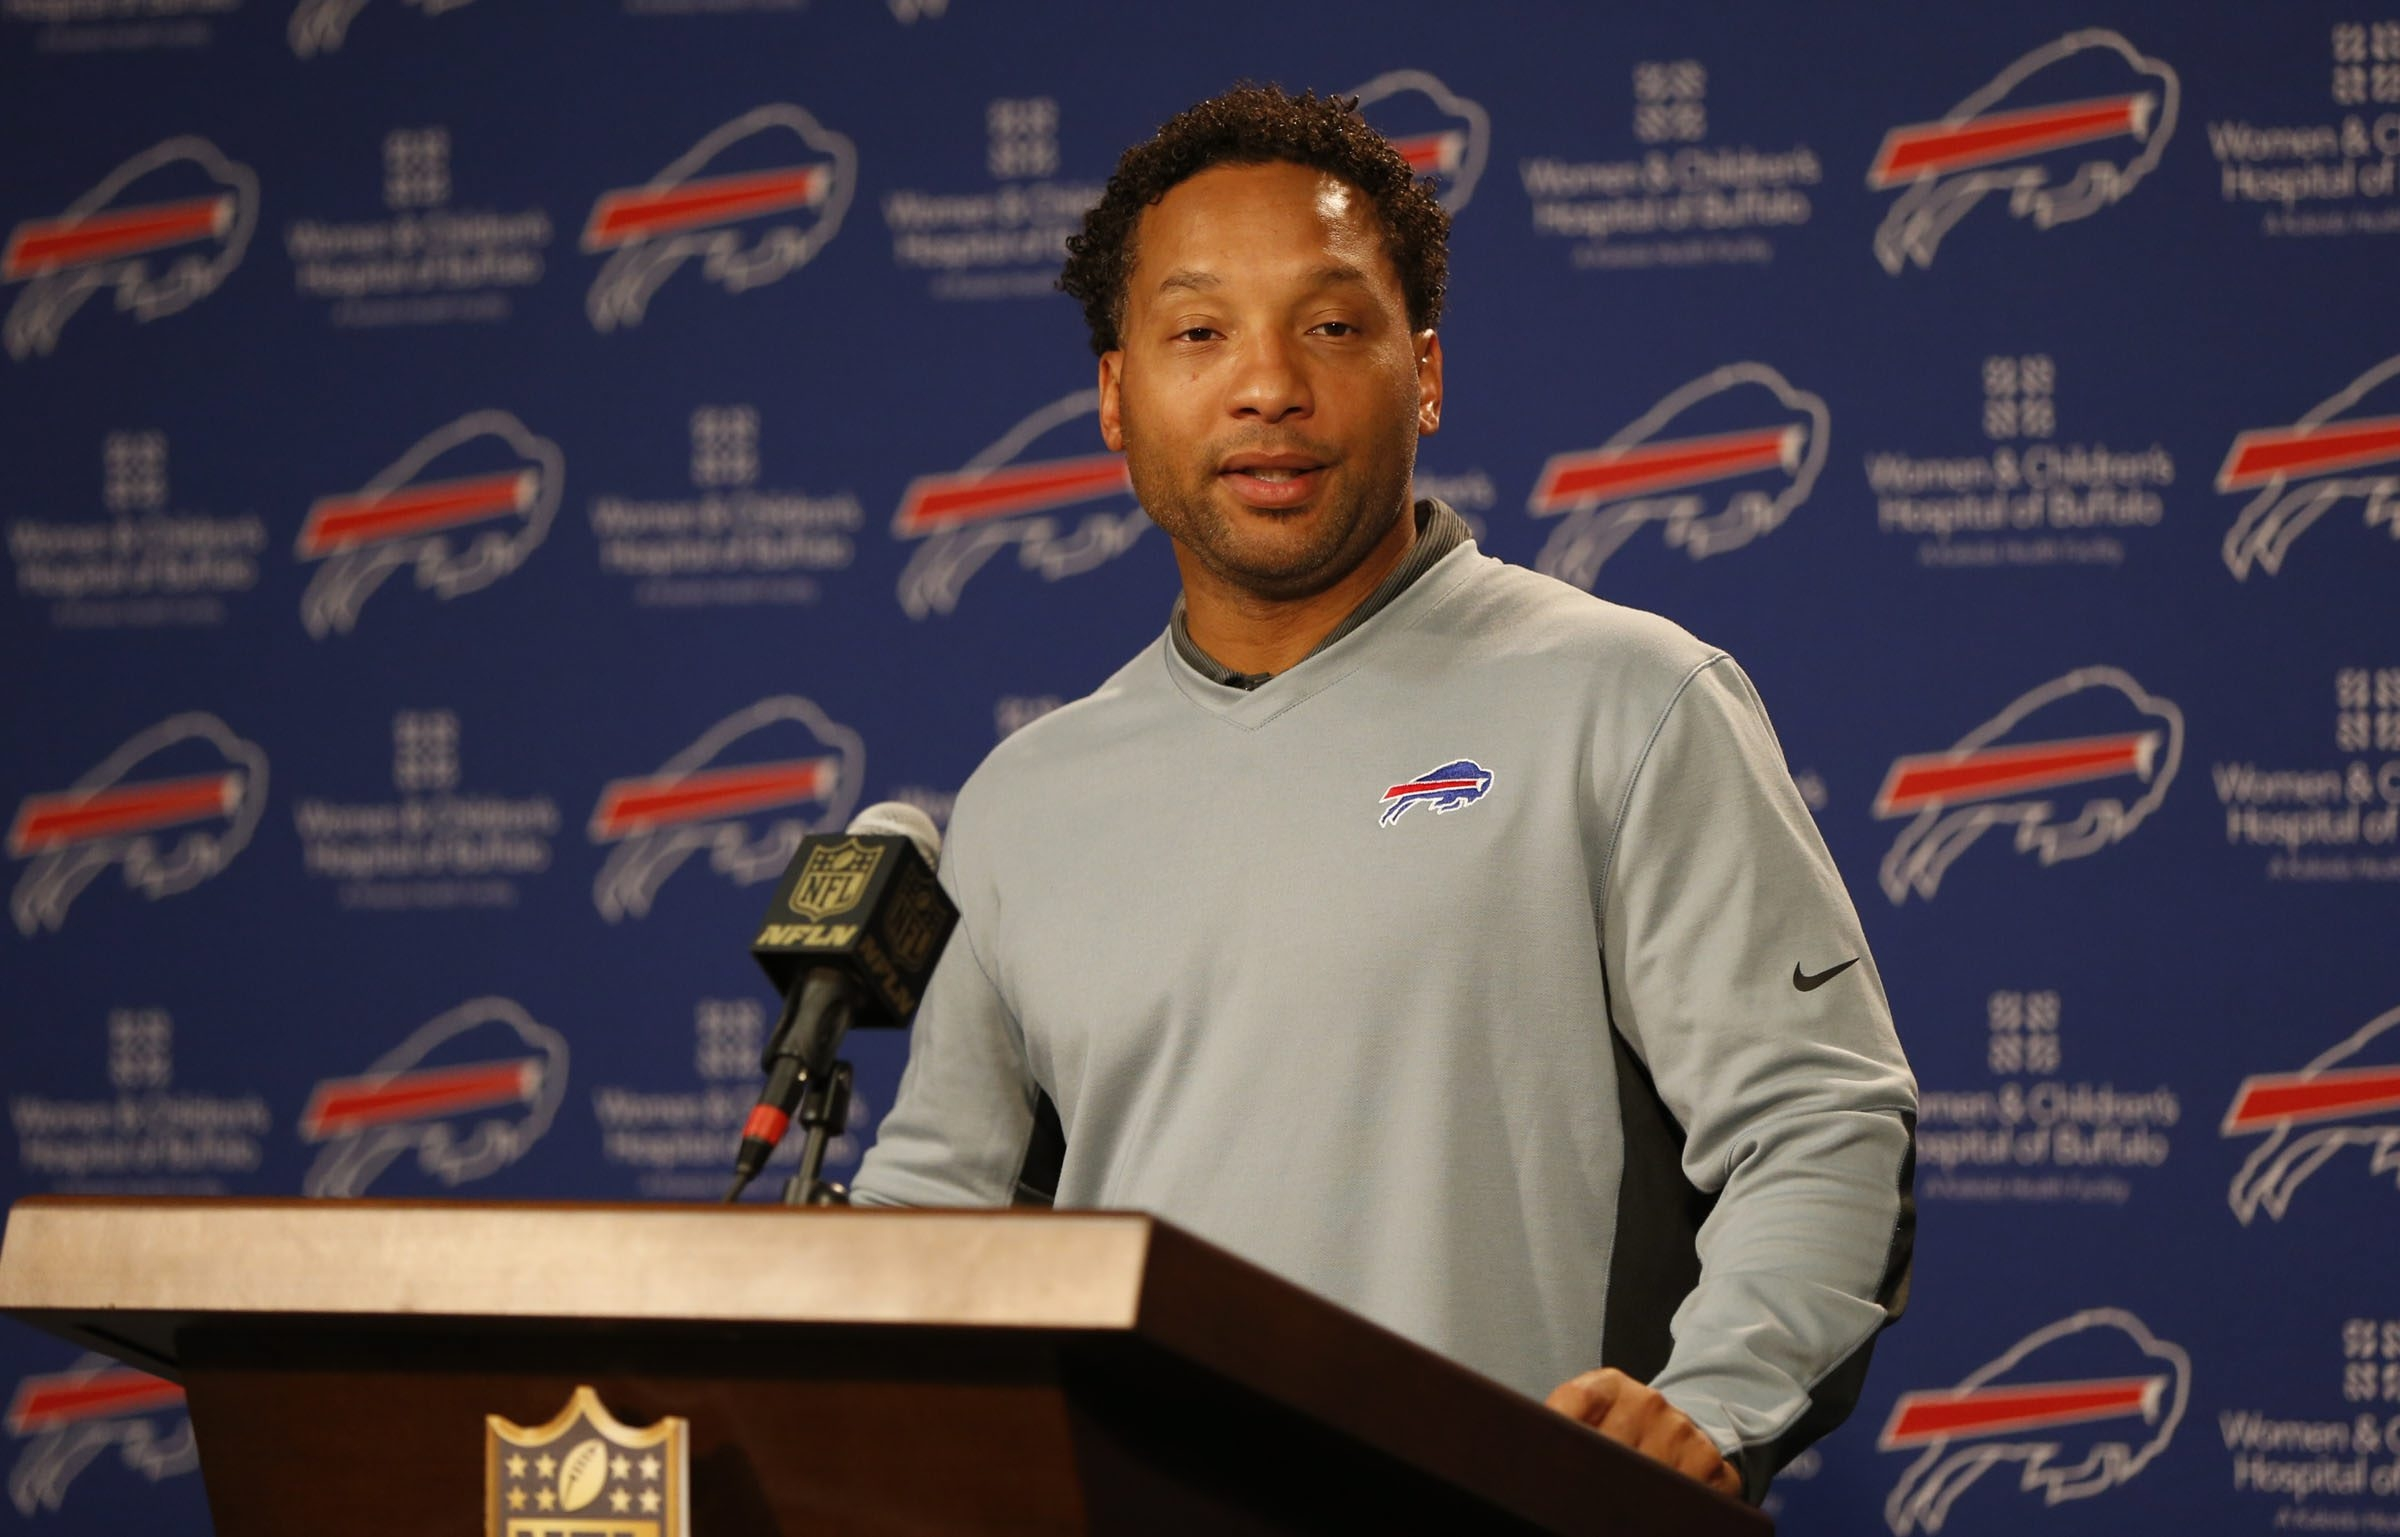 Tim Graham: Bills GM Whaley's roster-building is full of holes